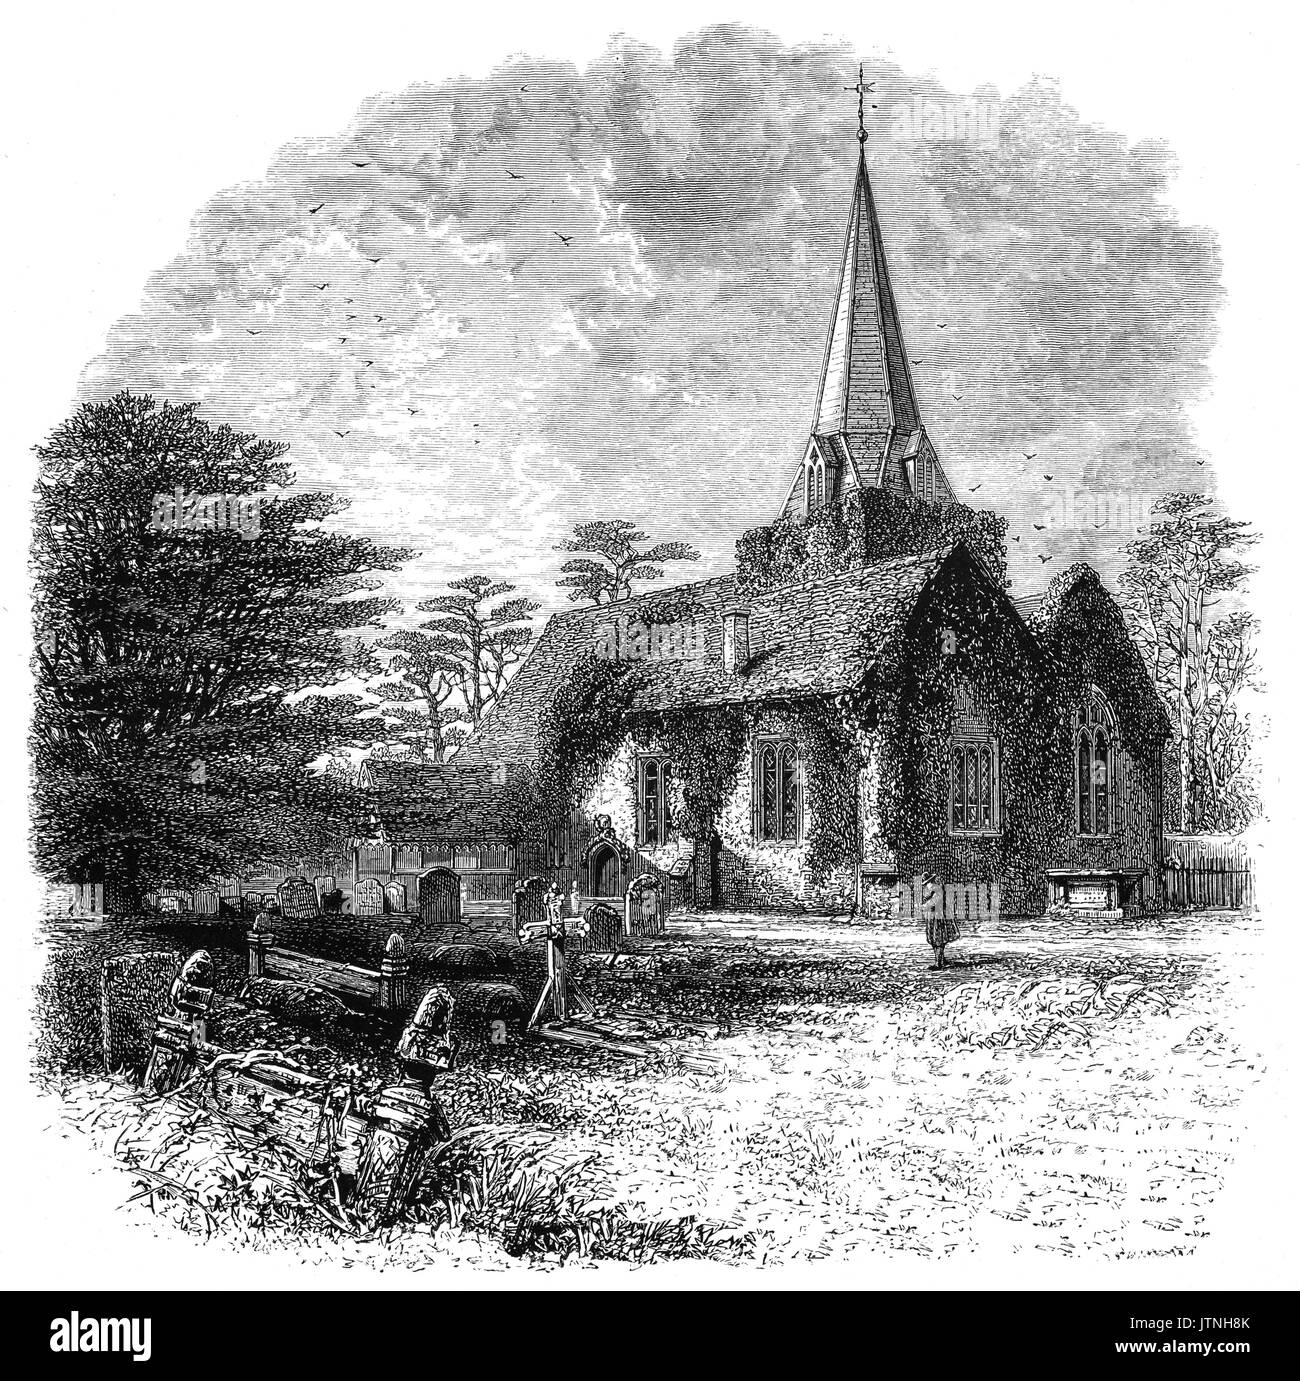 1870: The Churchyard and Norman Saint Giles church in Stoke Poges, a village in the South Bucks district of Buckinghamshire, England. Thomas Gray's  'Elegy Written in a Country Churchyard' is believed to have been written in the churchyard. - Stock Image